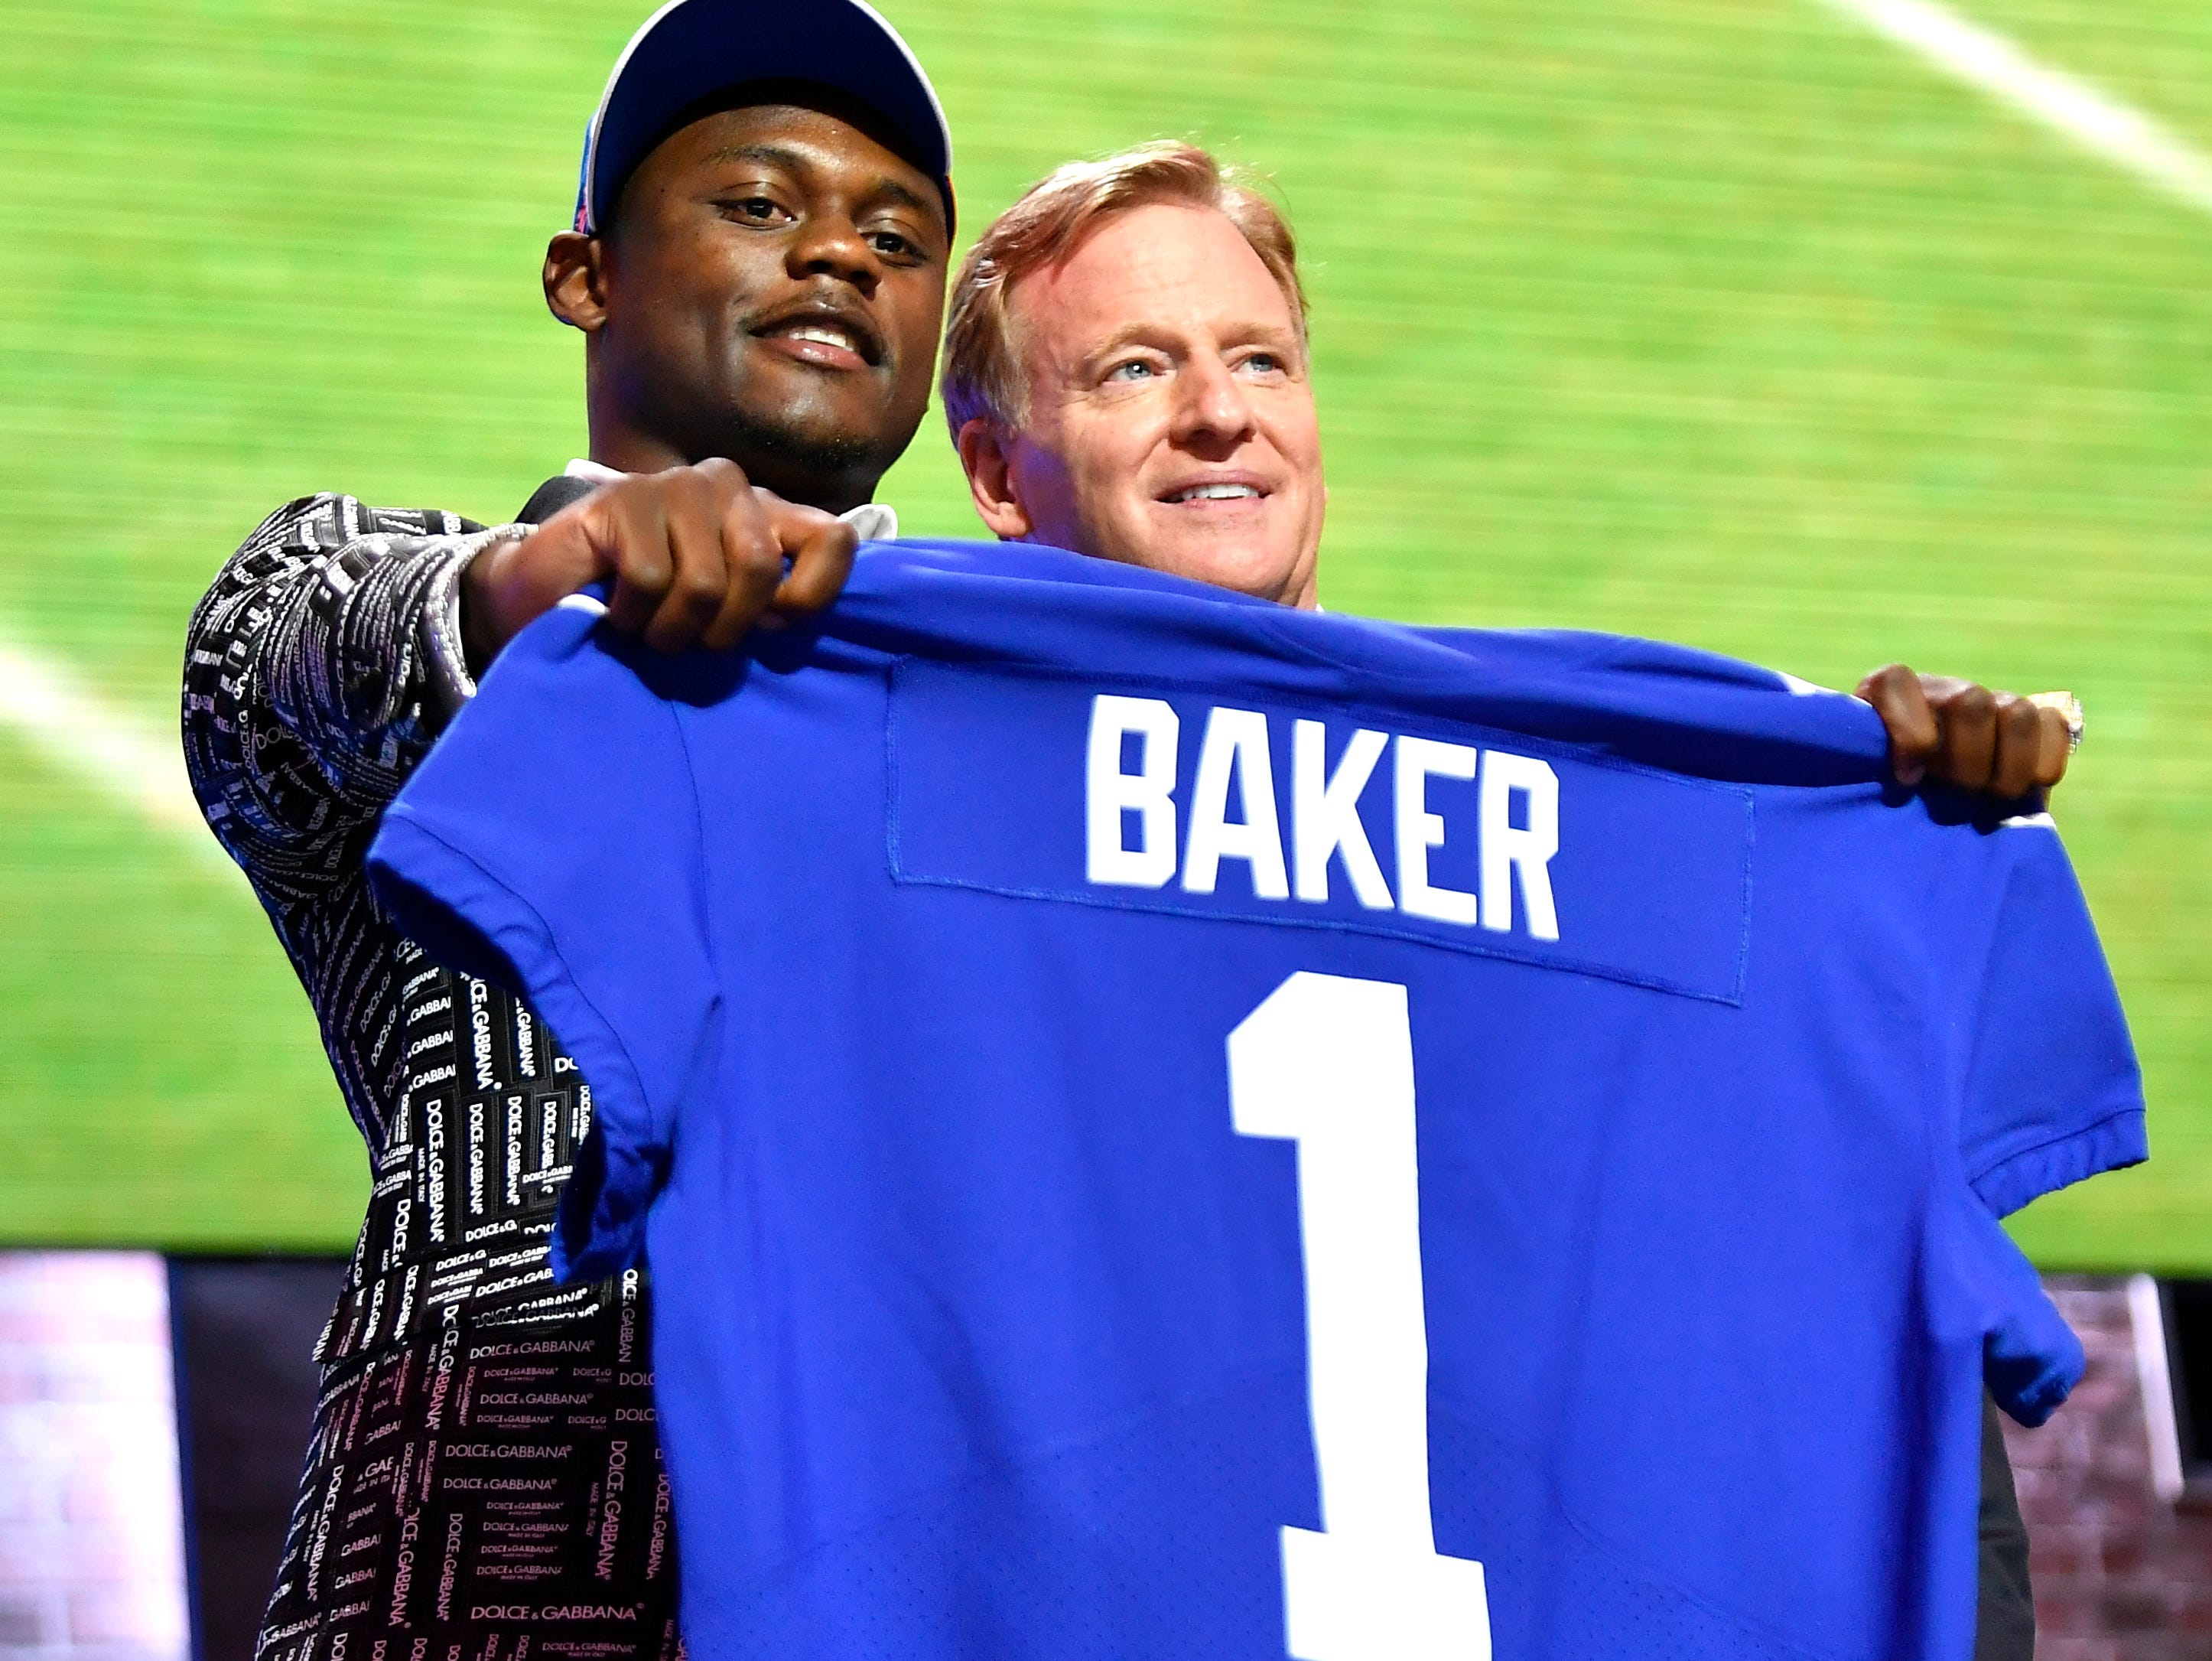 Deandre Baker holds his New York Giants jersey with NFL Commissioner Roger Goodell after being chosen the 30th pick of the first round of the NFL Draft Thursday, April 25, 2019, in Nashville, Tenn.